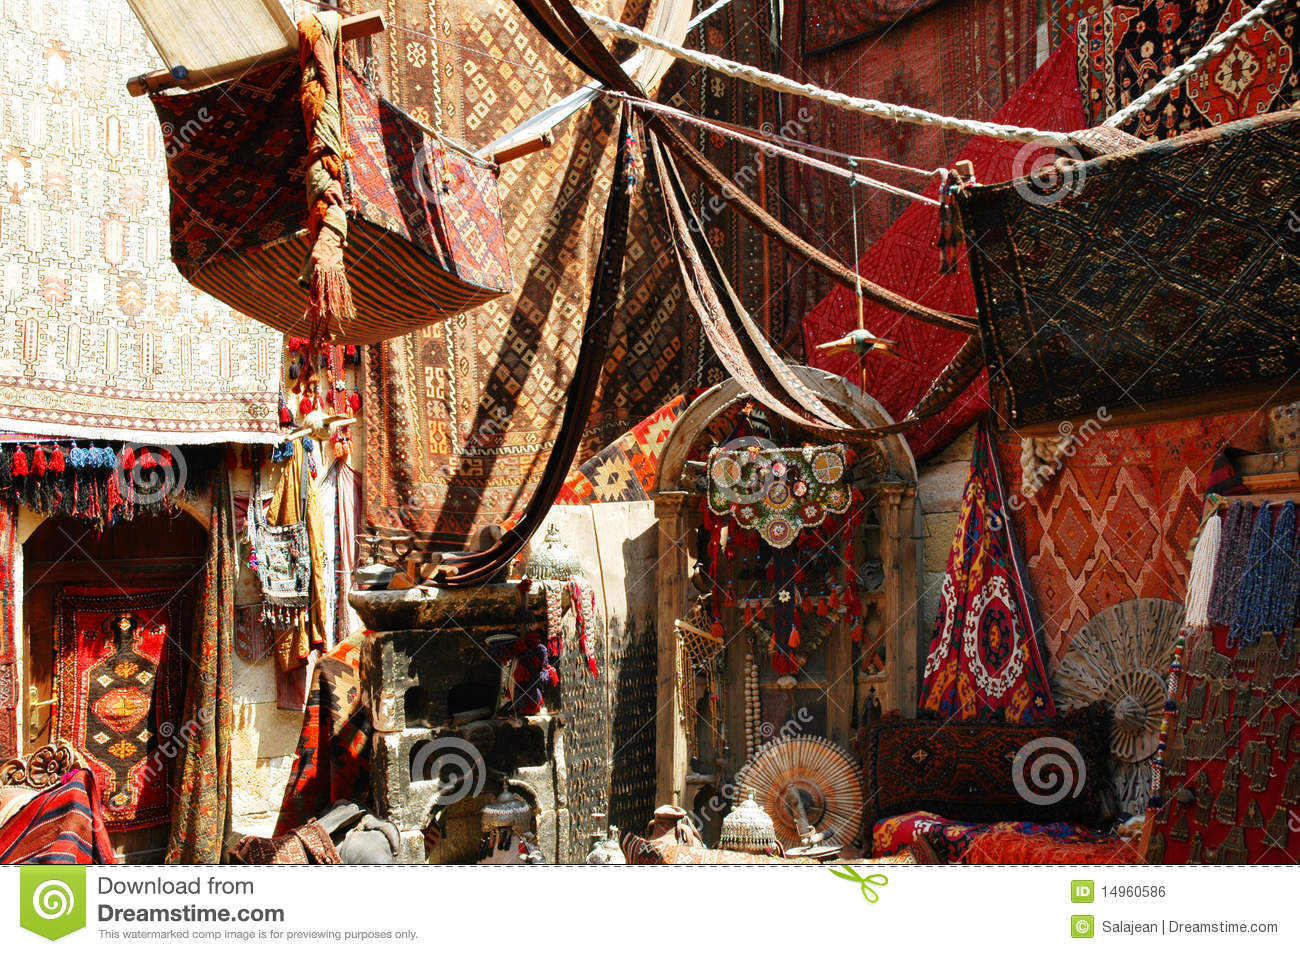 Turkish Carpet Store Bazaar Royalty Free Stock Image